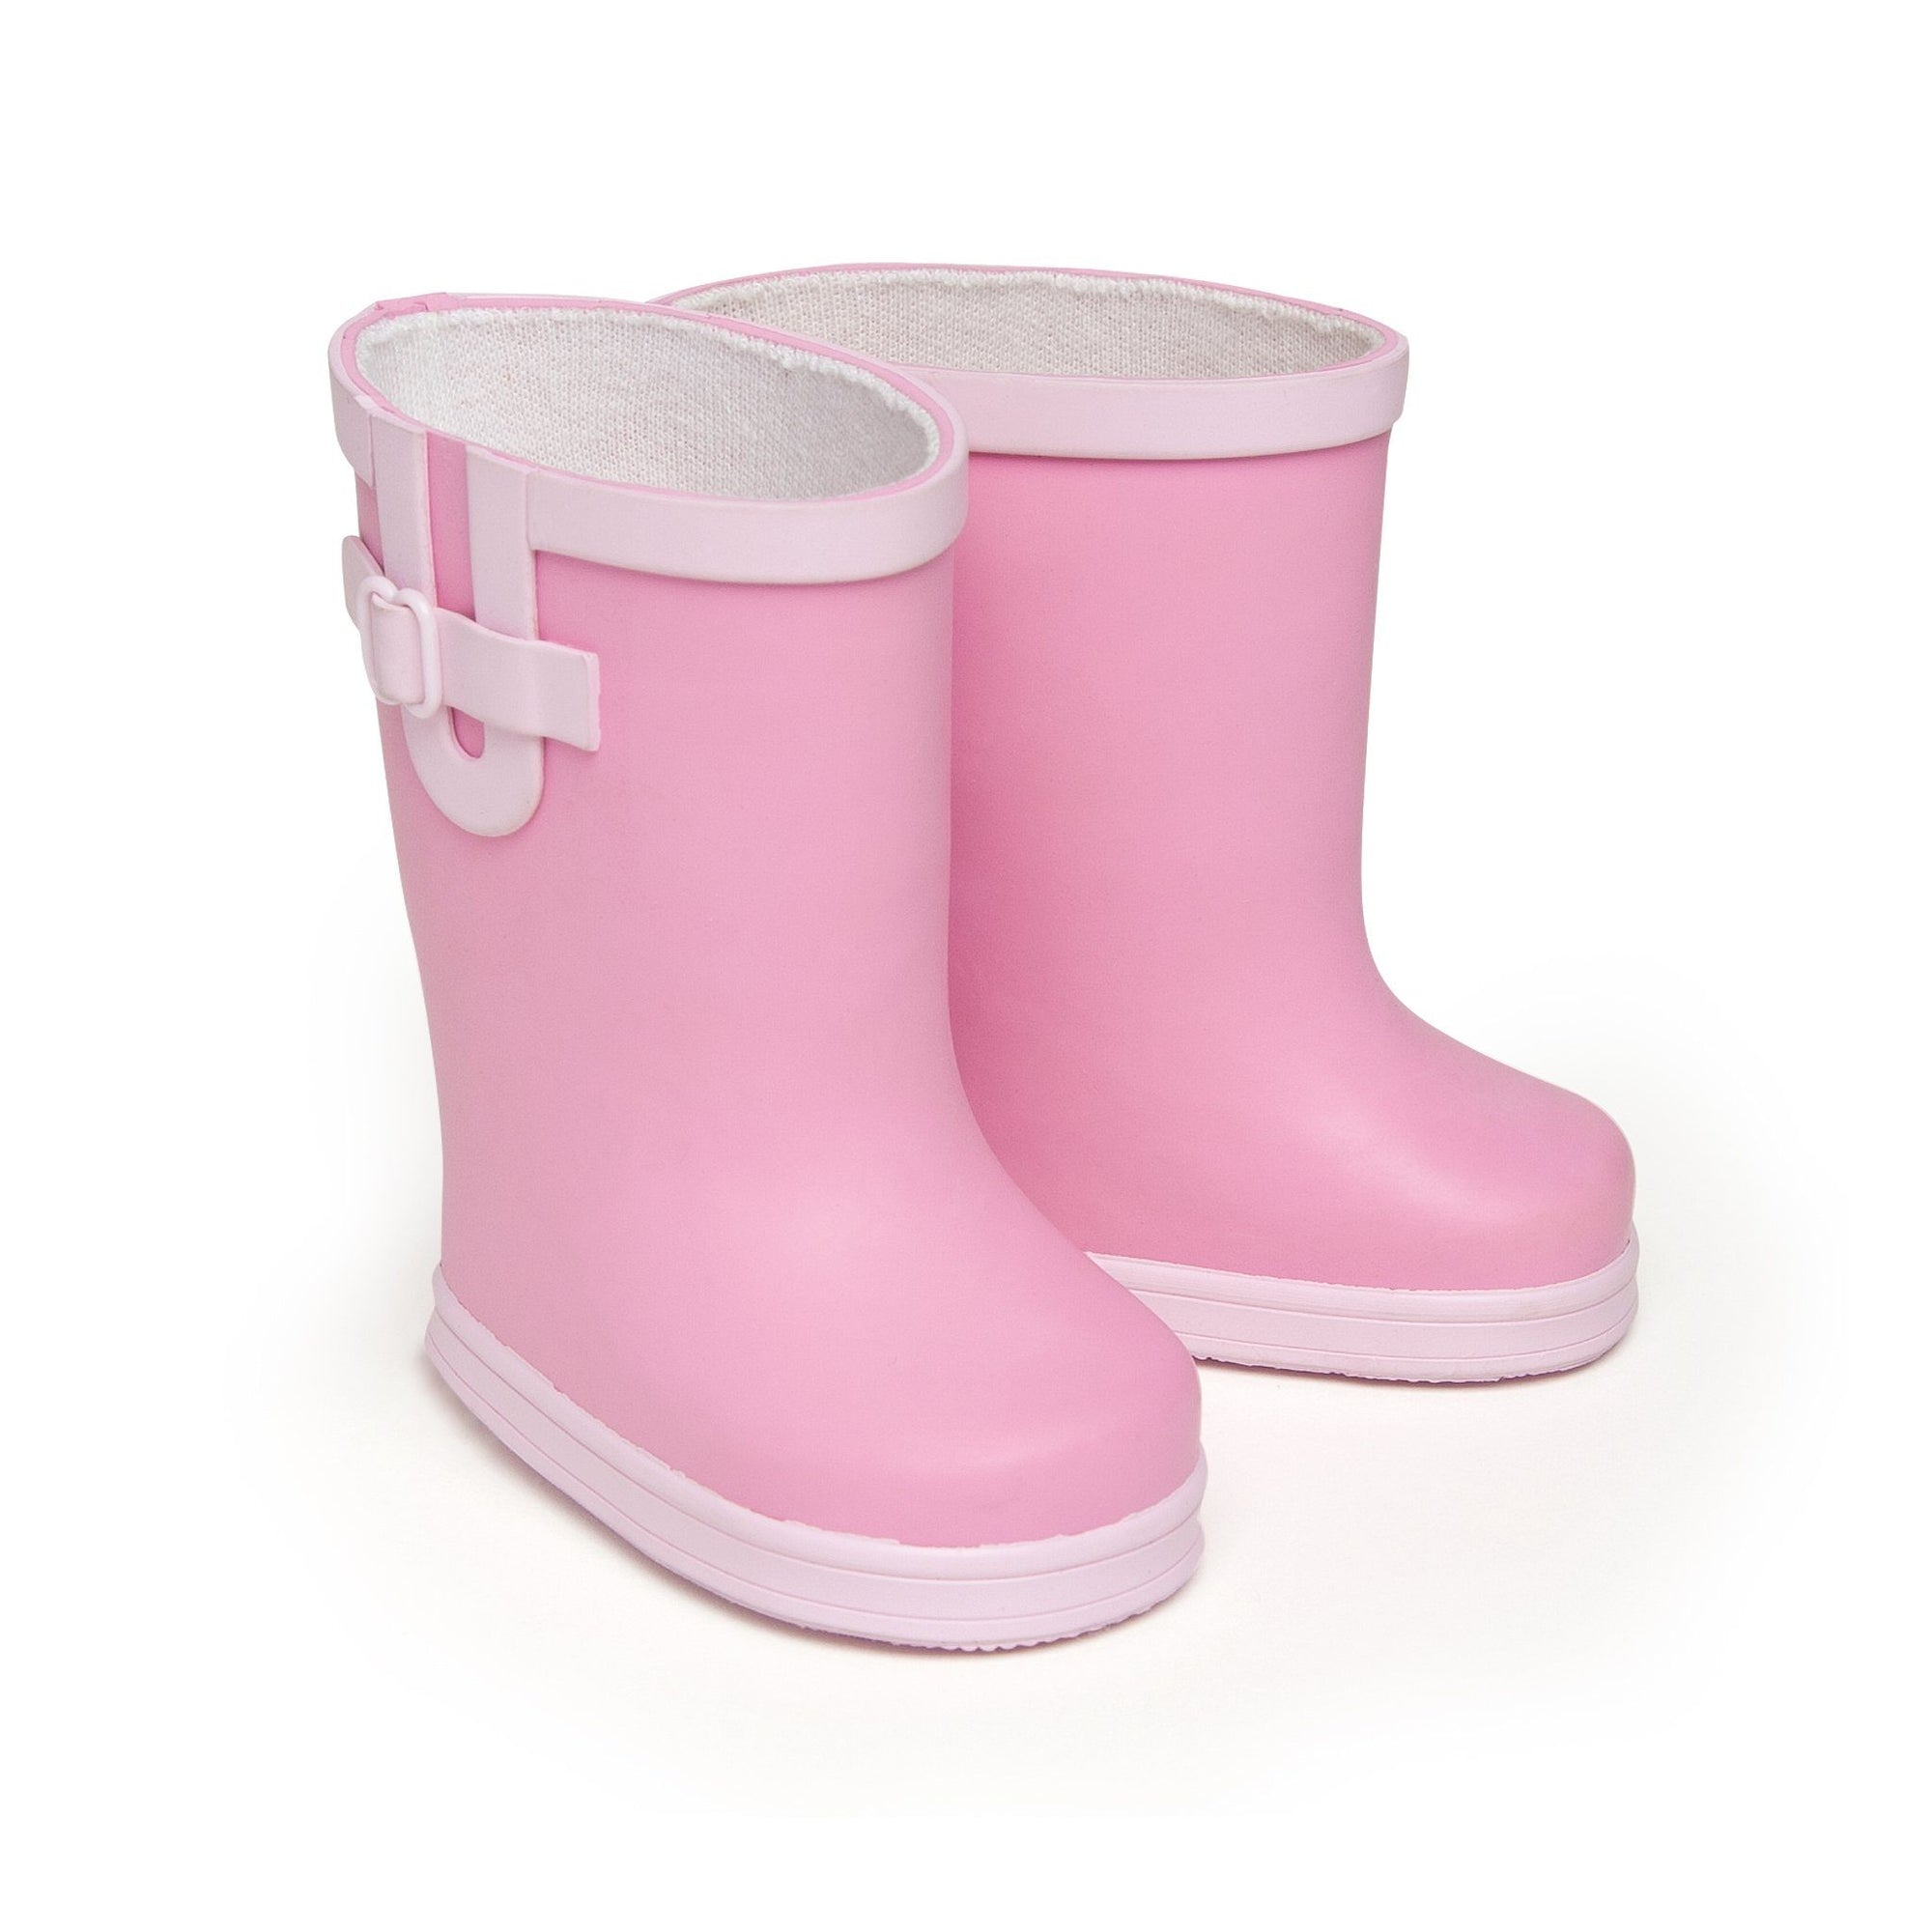 Two-tone pink puddle jumper rubber rain boots fit all 18 inch dolls.